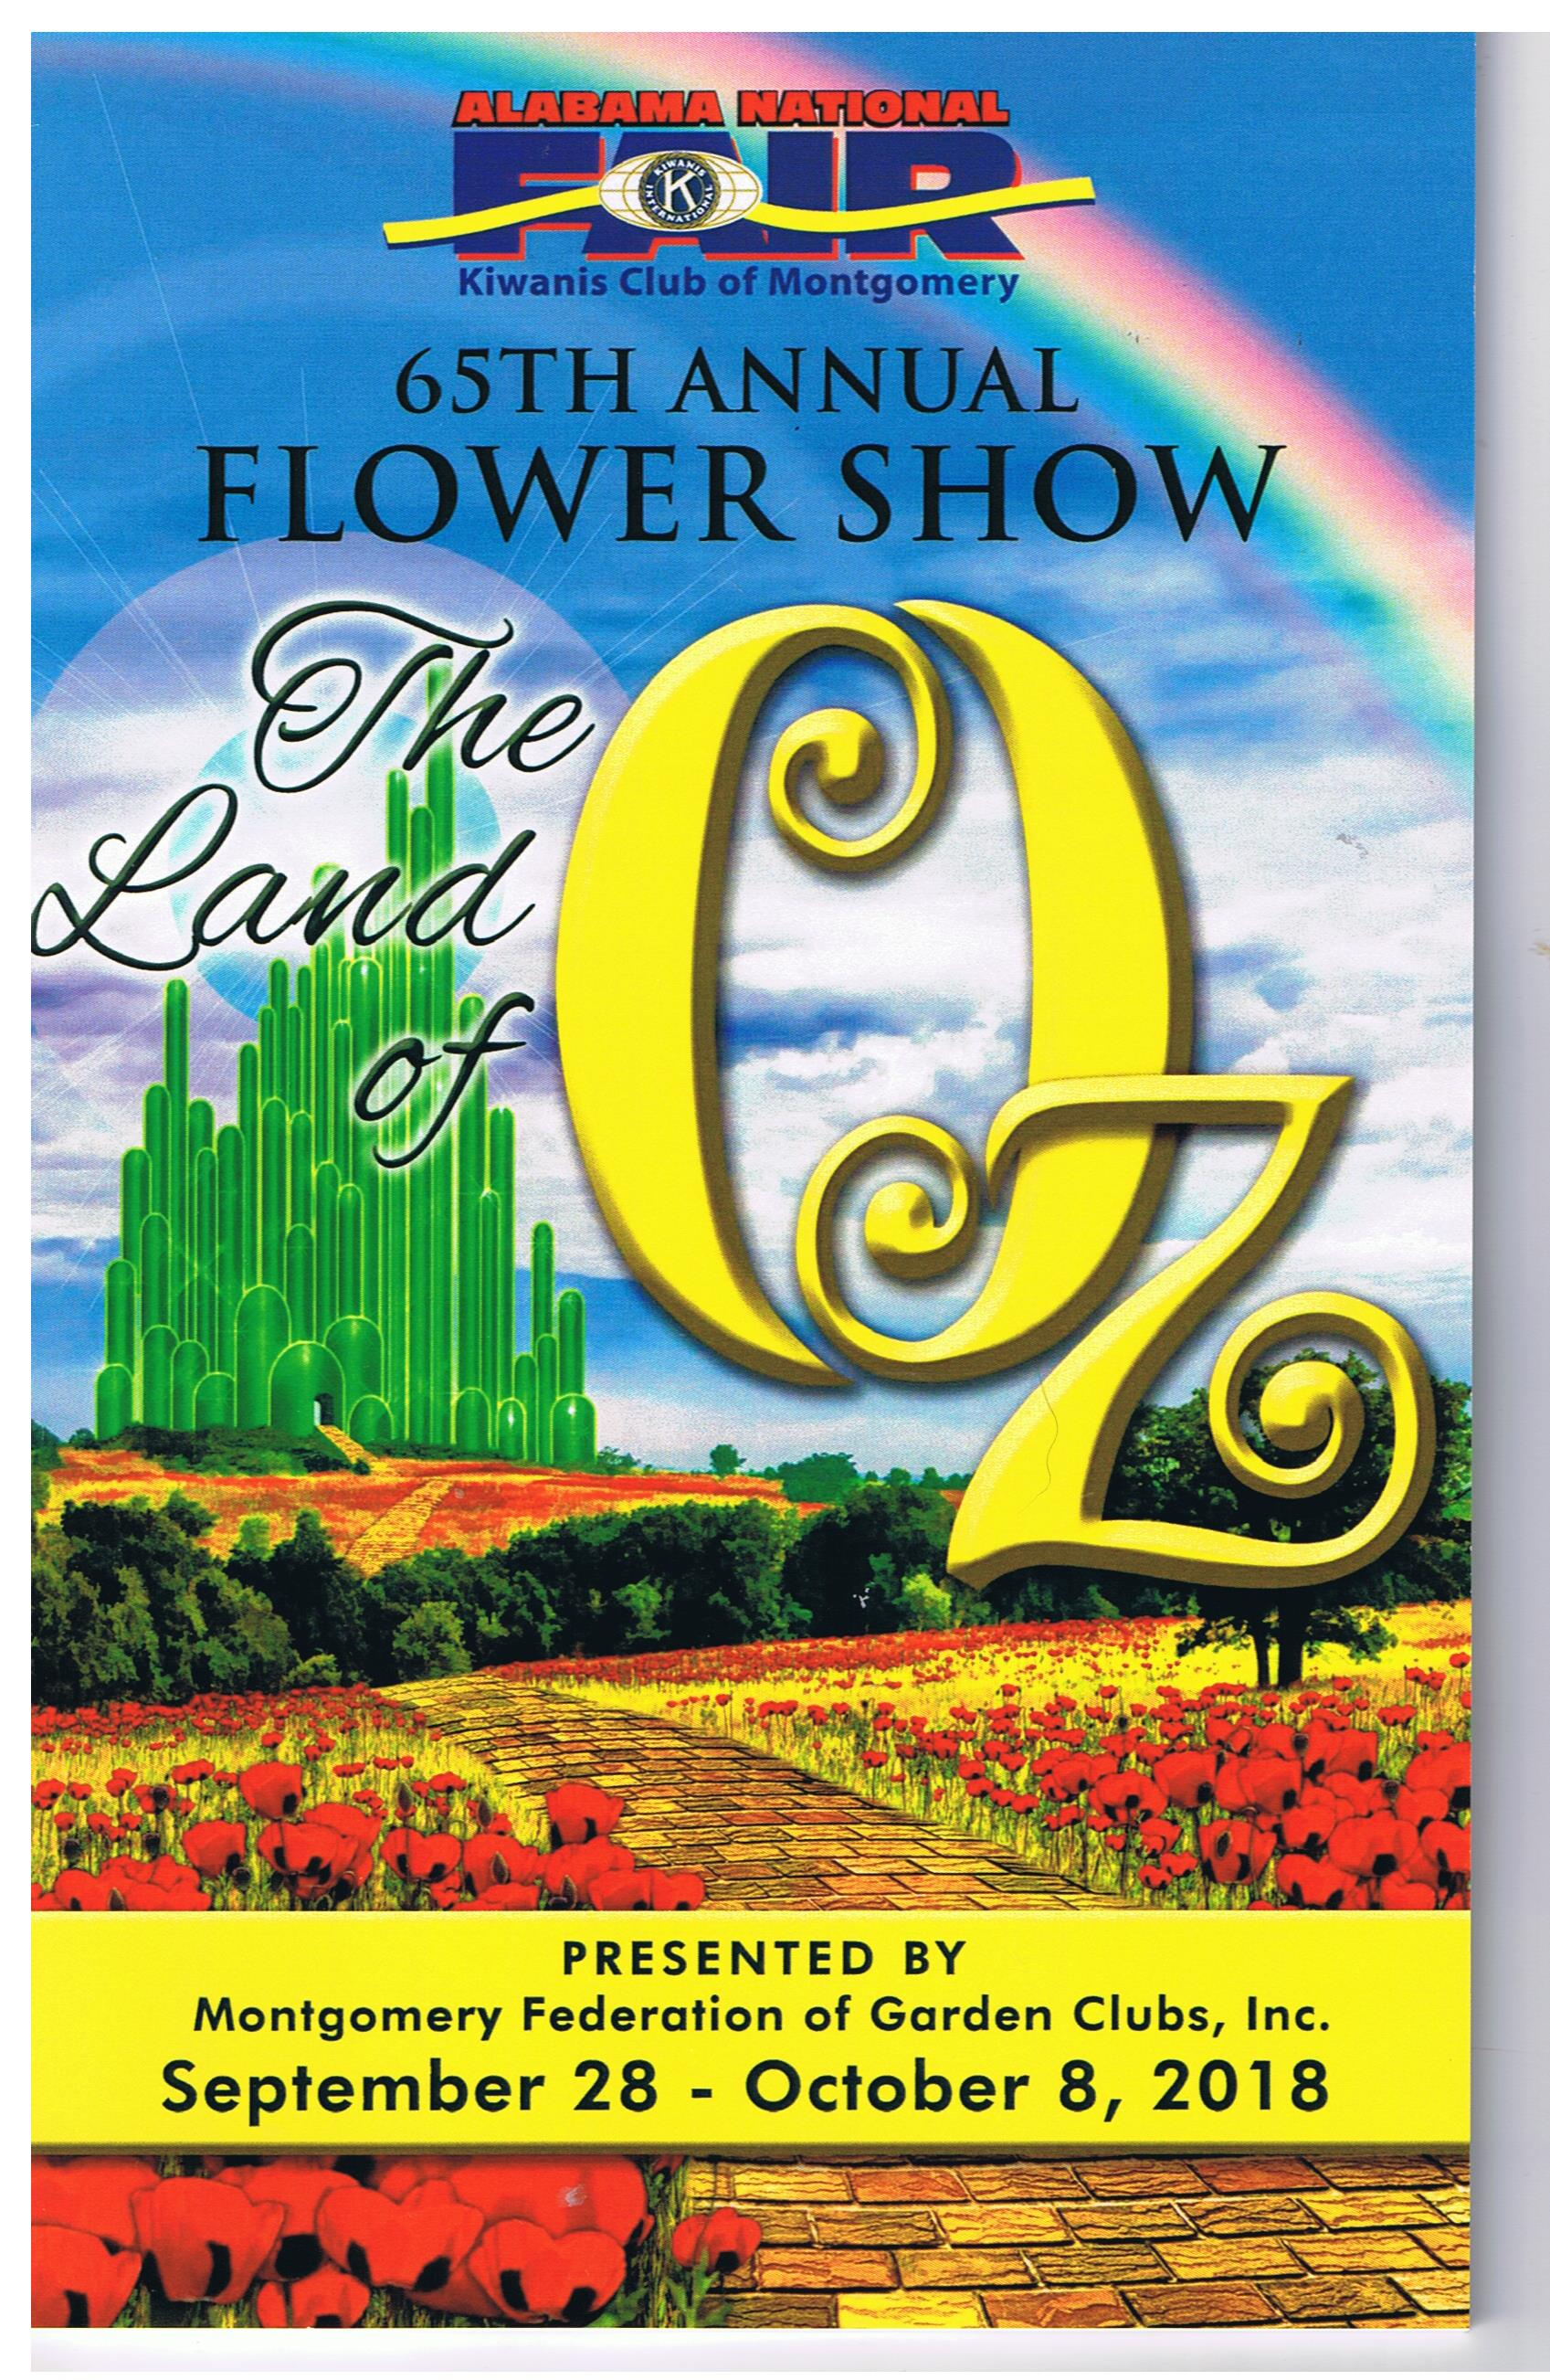 65th Annual Flower Show - The Land of Oz